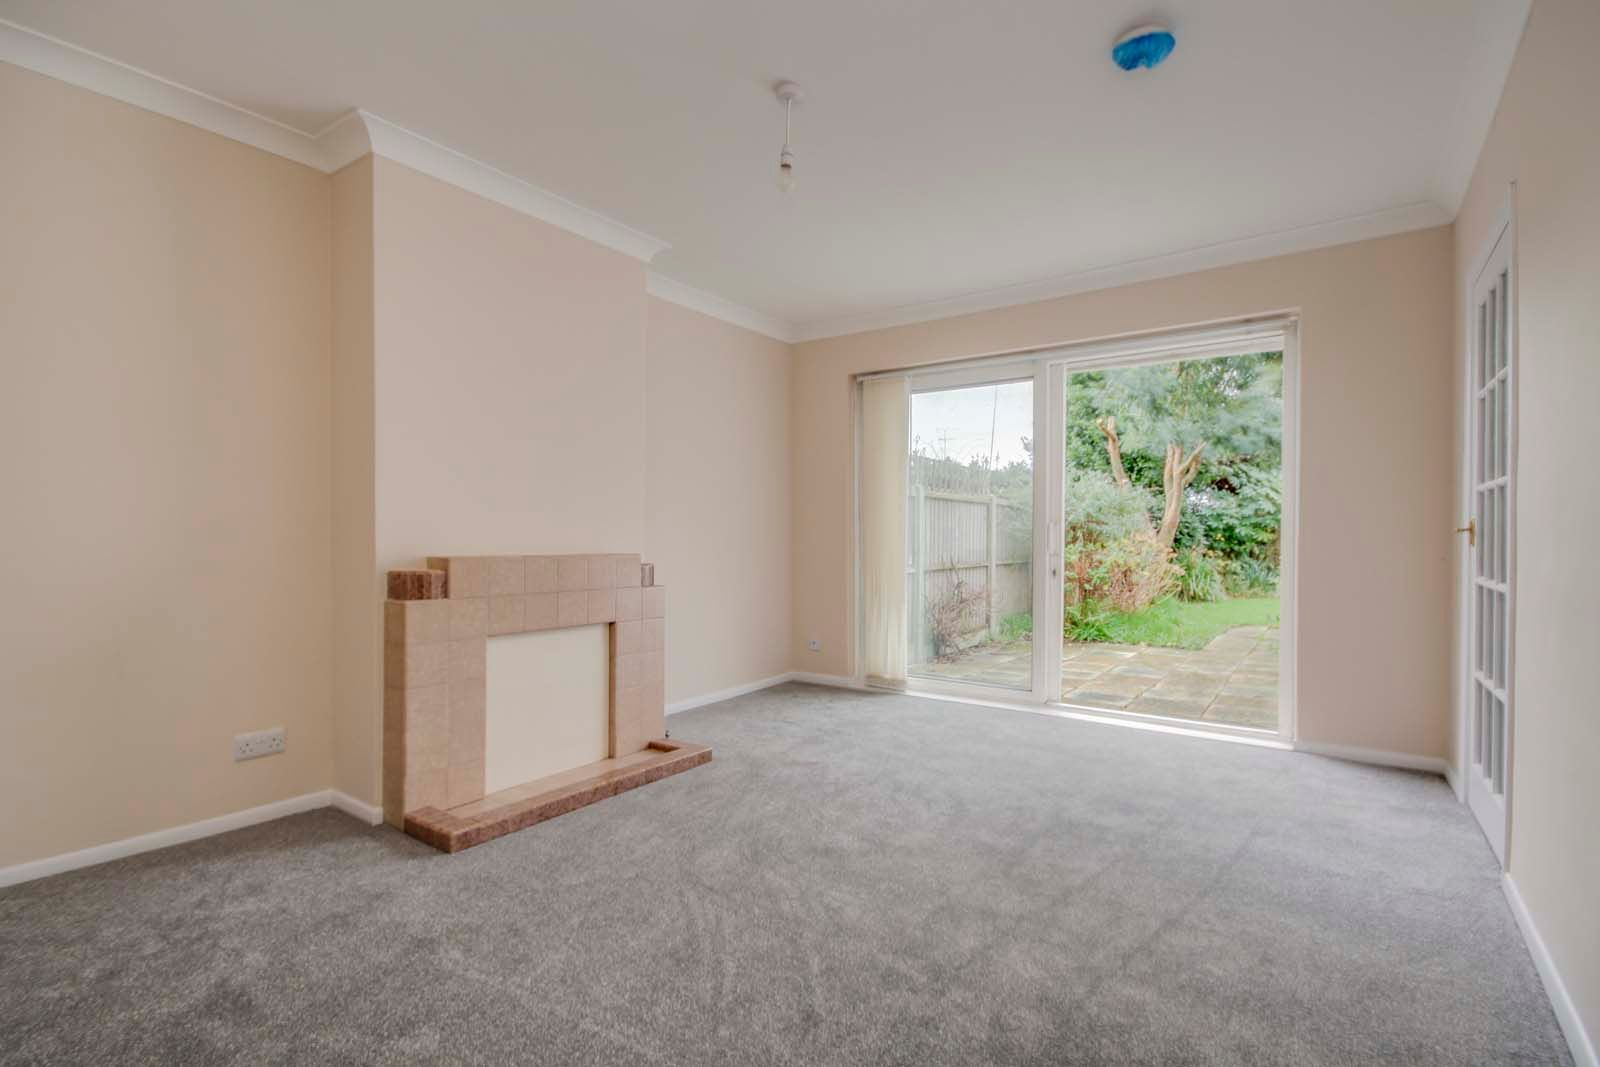 3 bed bungalow for sale in Hillview Crescent COMP MAY 2019 5